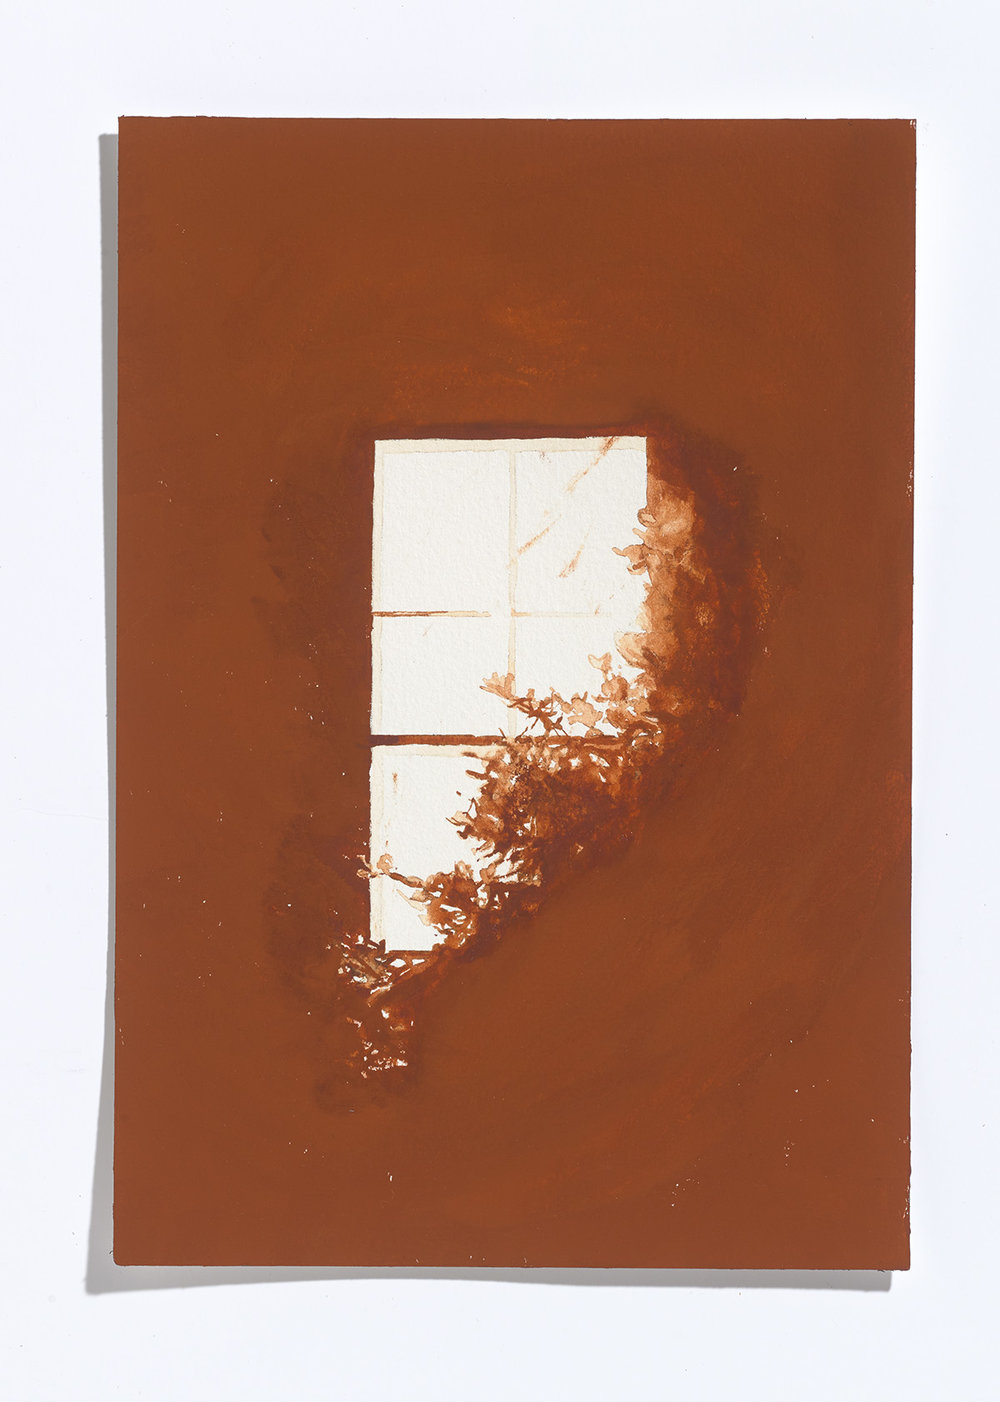 Rust window, 2017, gouache on paper, 10.25 x 7 1/8 in. $1000 CAD $800 USD